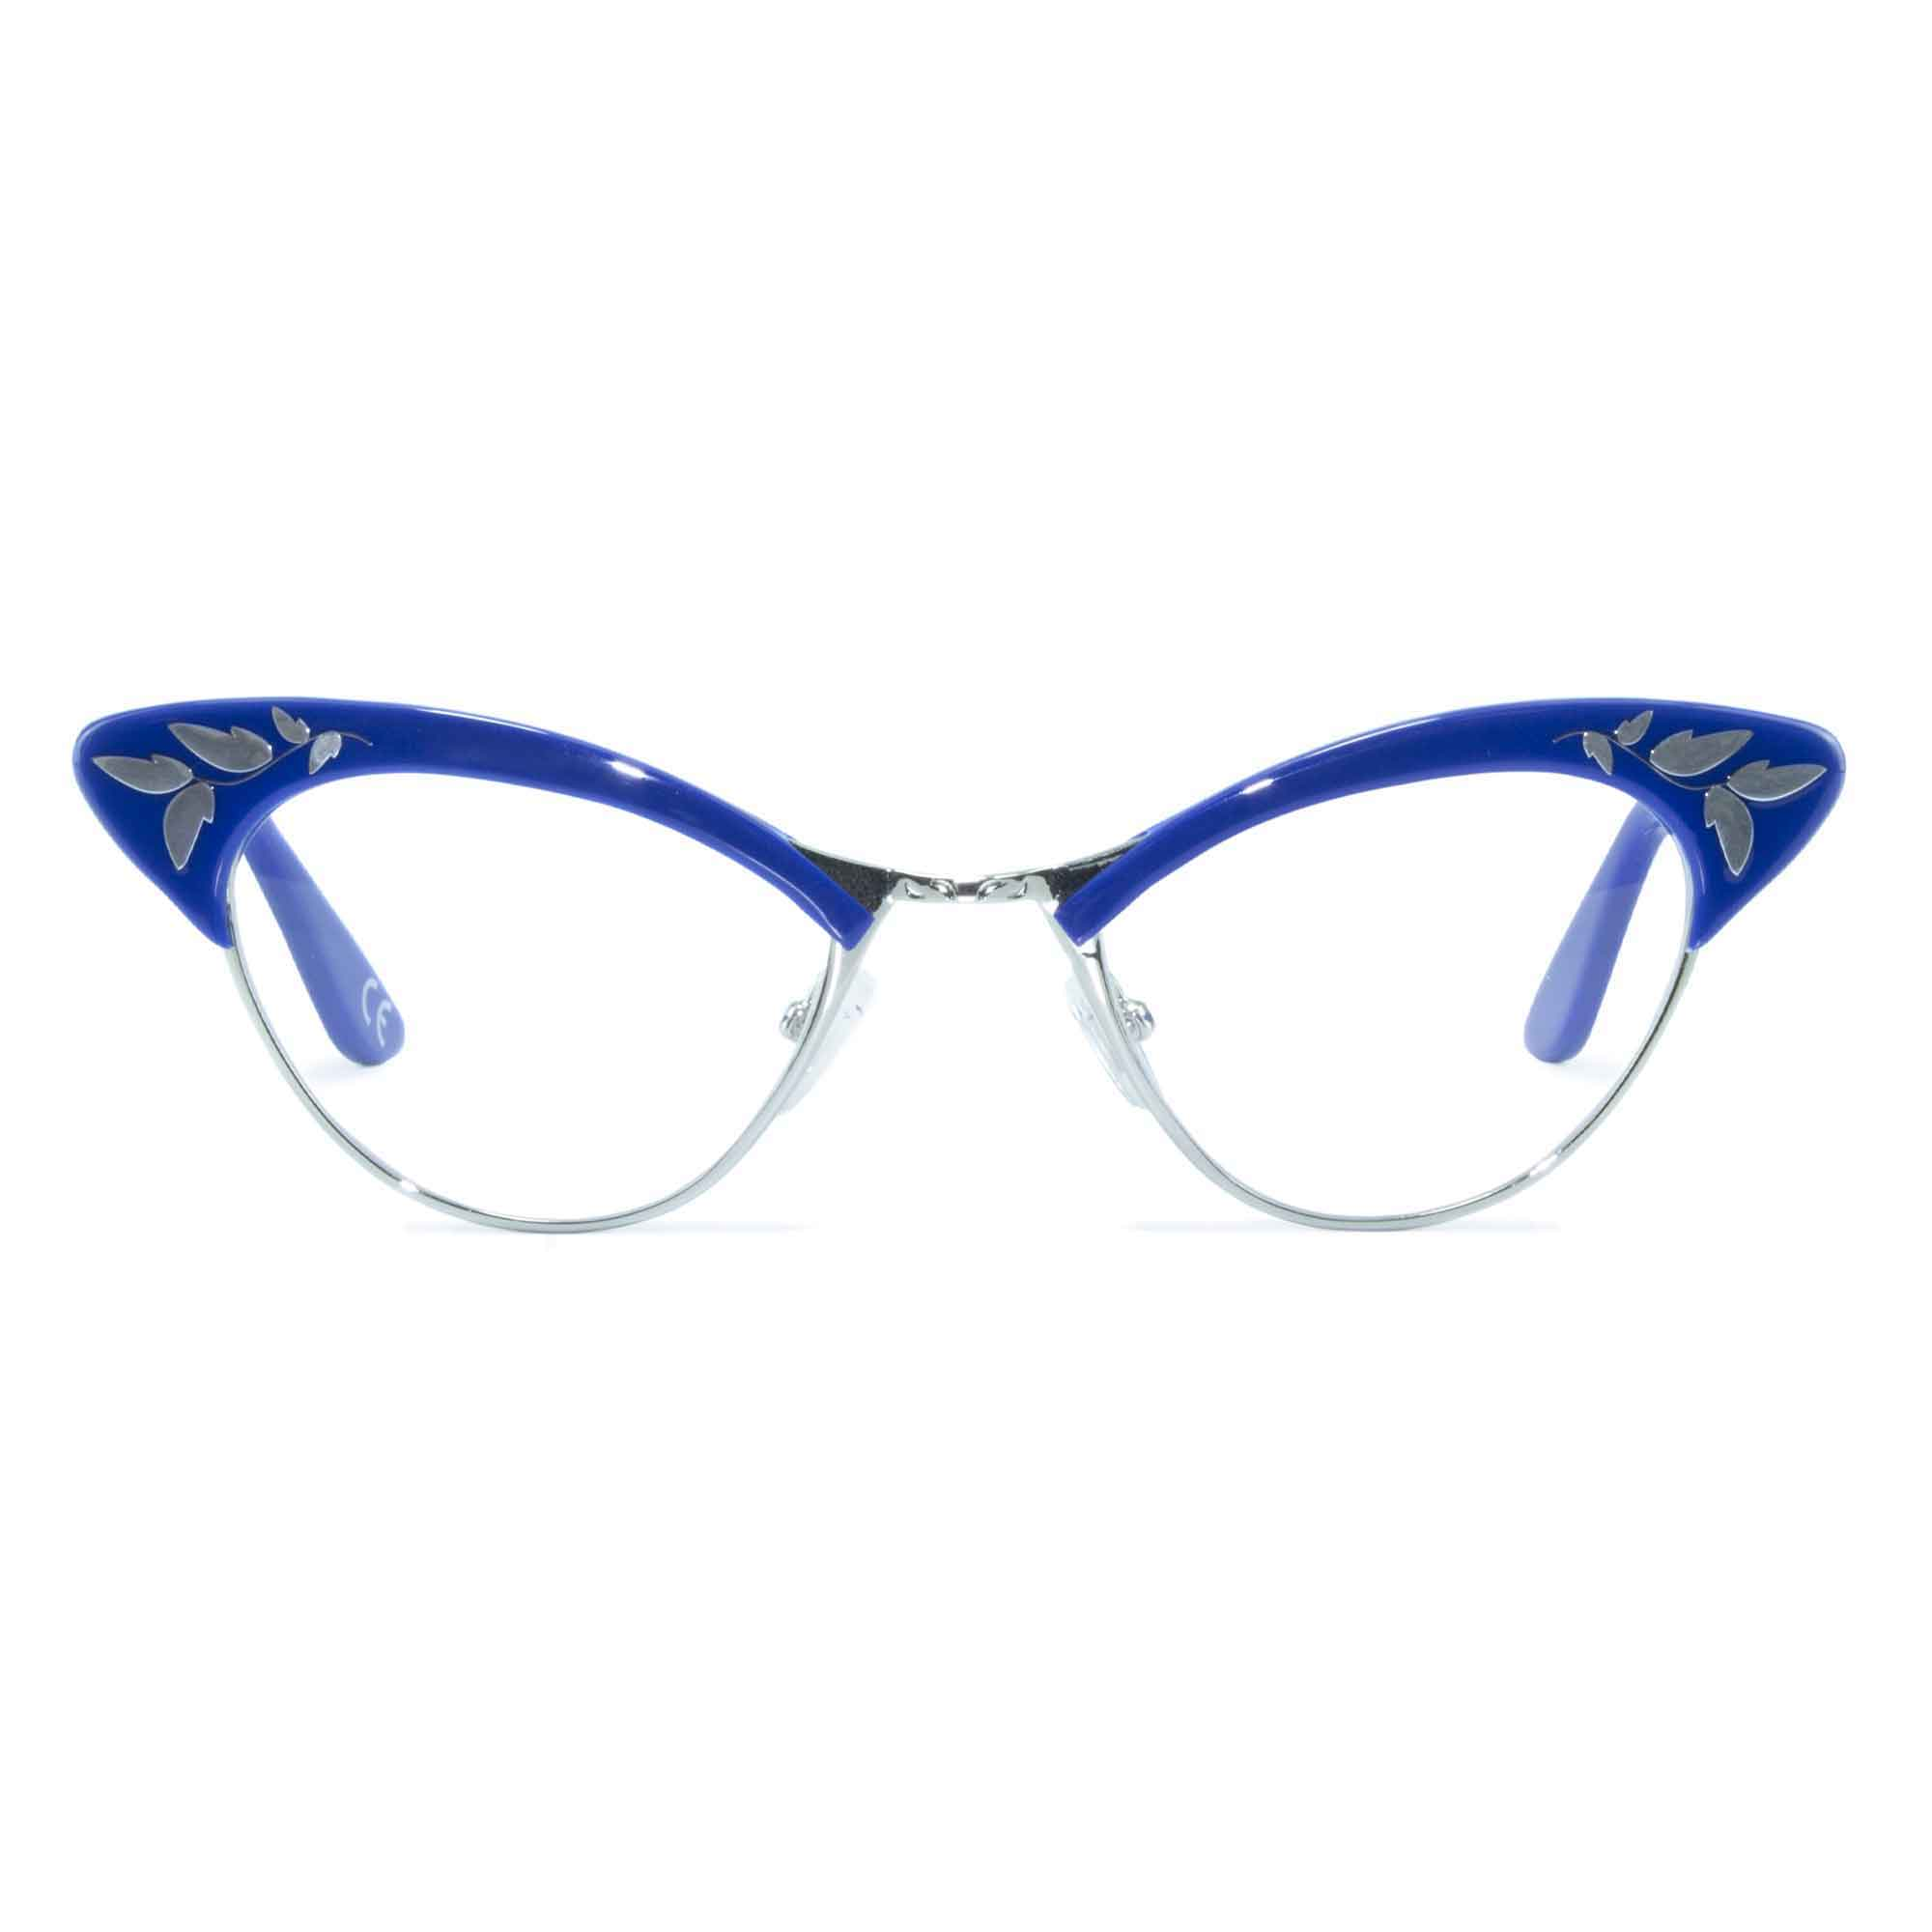 Joiuss rita blue & gold cat eye glasses